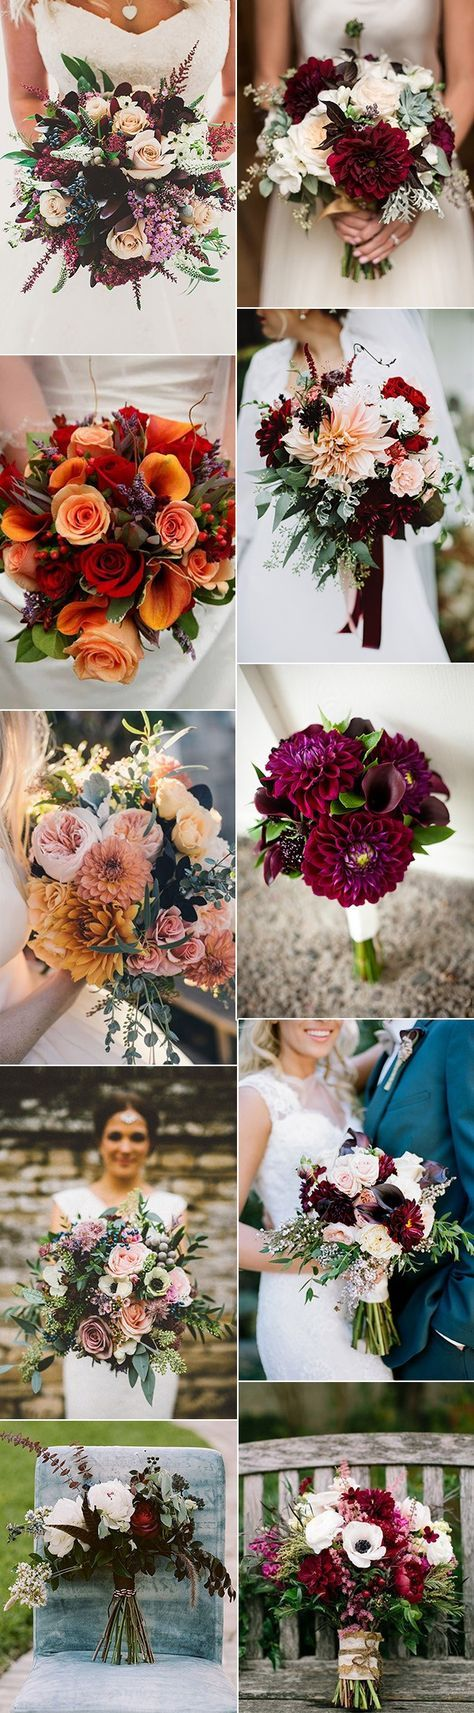 flowers for a wedding best 25 bouquets ideas on bridal flower 4259